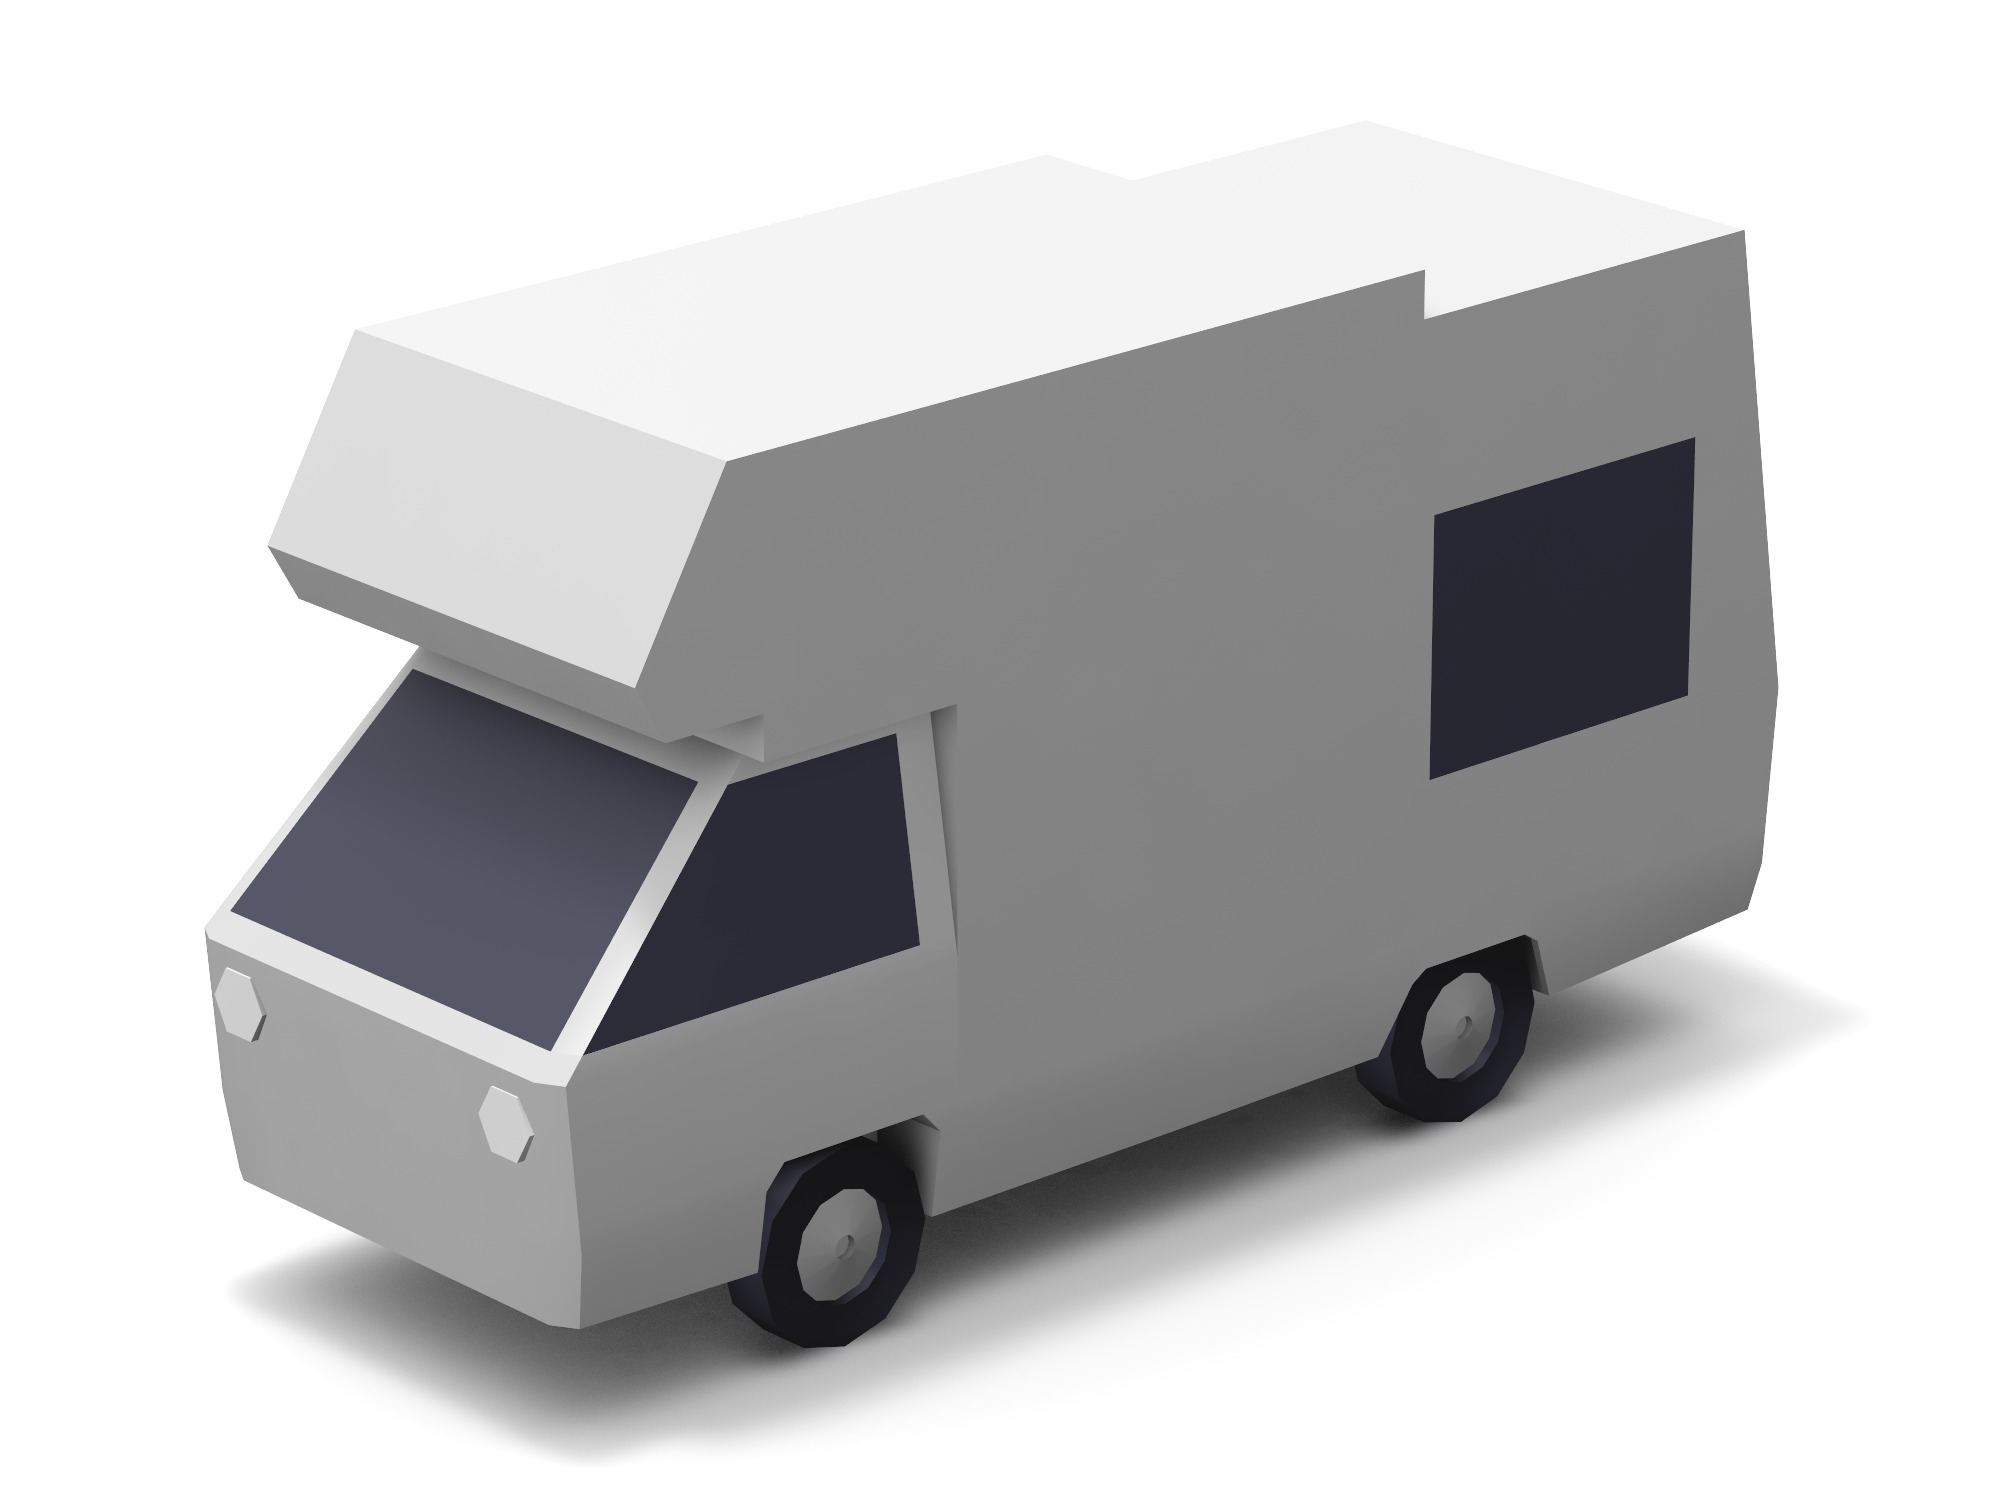 Car - caravan - 3D design by Vectary assets Aug 17, 2018